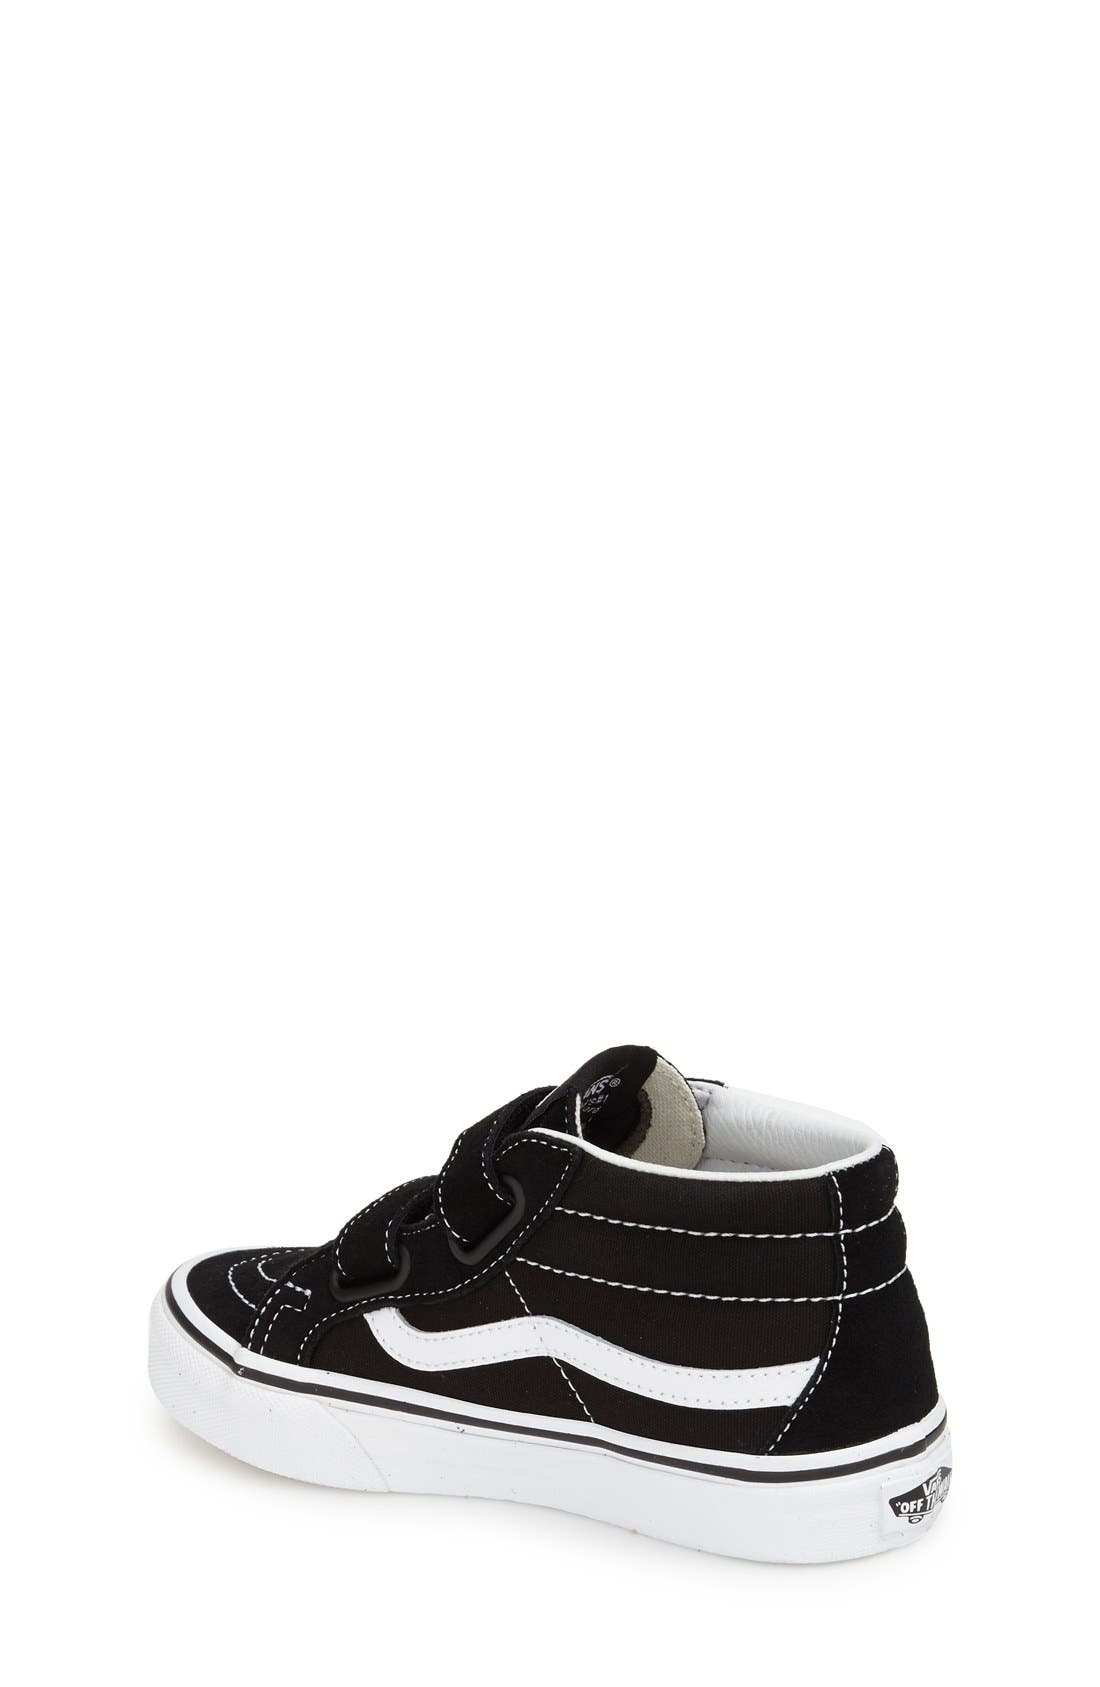 VANS, 'Sk8-Hi Reissue V' Sneaker, Alternate thumbnail 2, color, BLACK/ TRUE WHITE